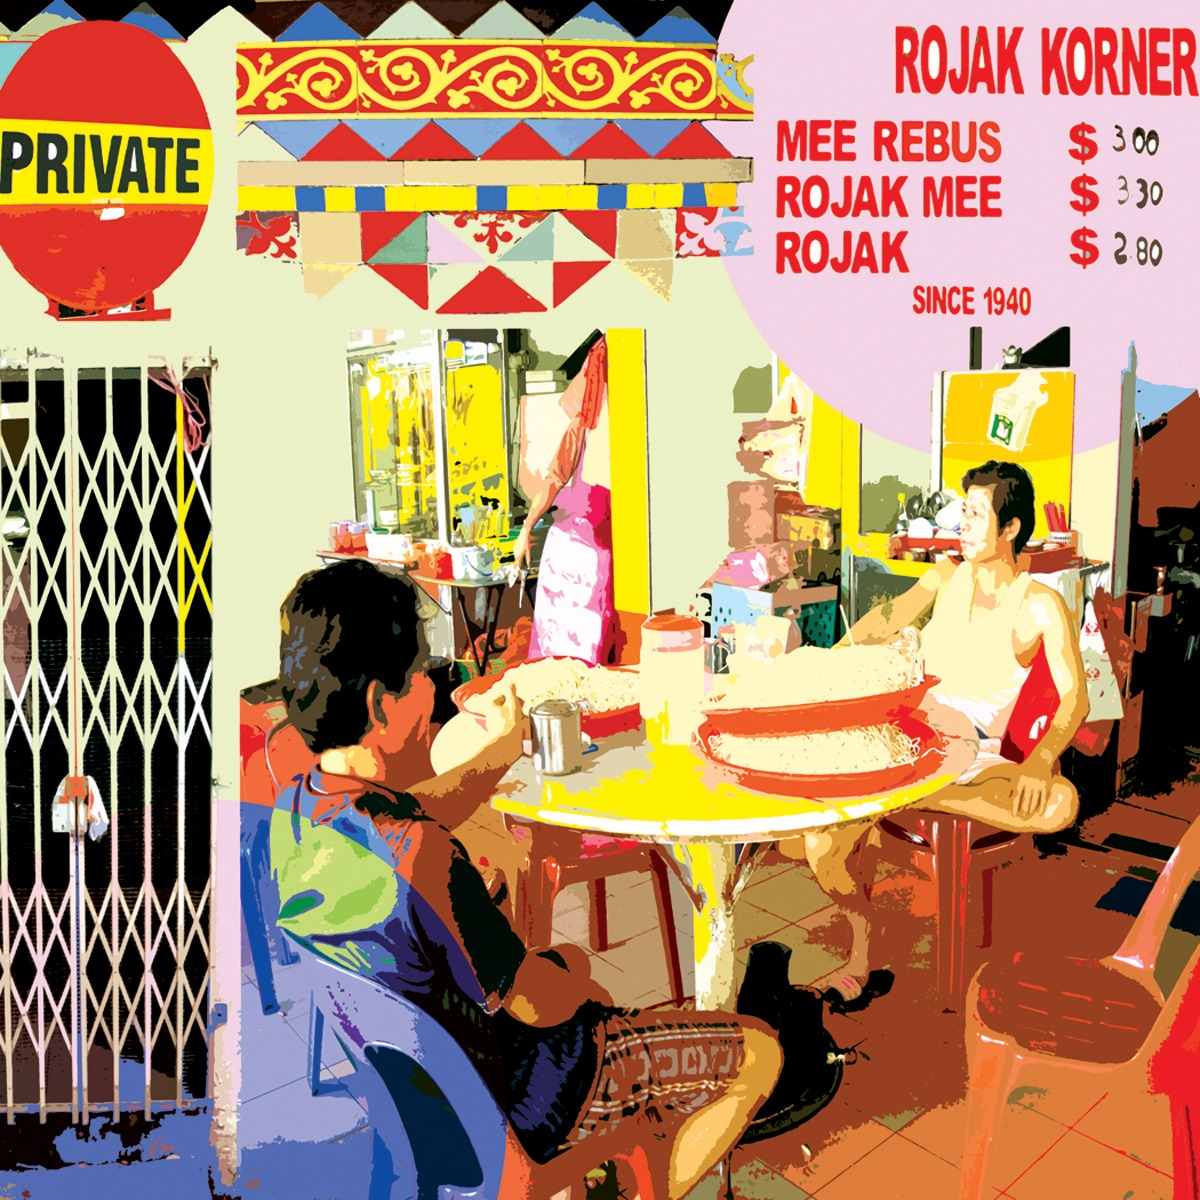 'PRIVATE ROJAK KORNER'